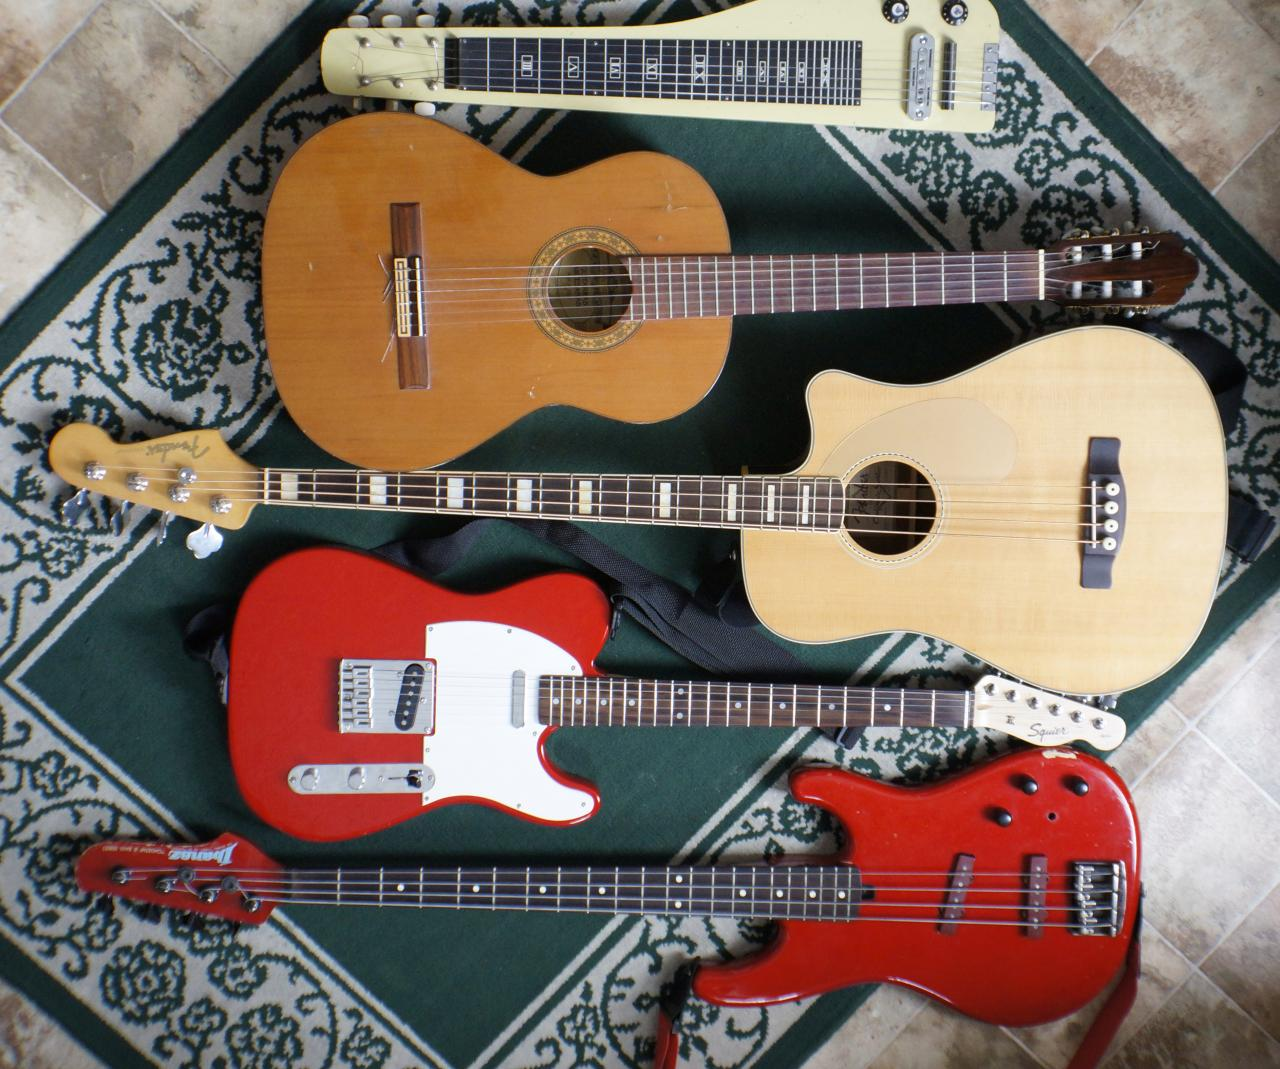 Guitars to practice: $5 yard sale lap steel, Fender Kingston bass, classical acoustic, Squier Telecaster, Ibanez bass